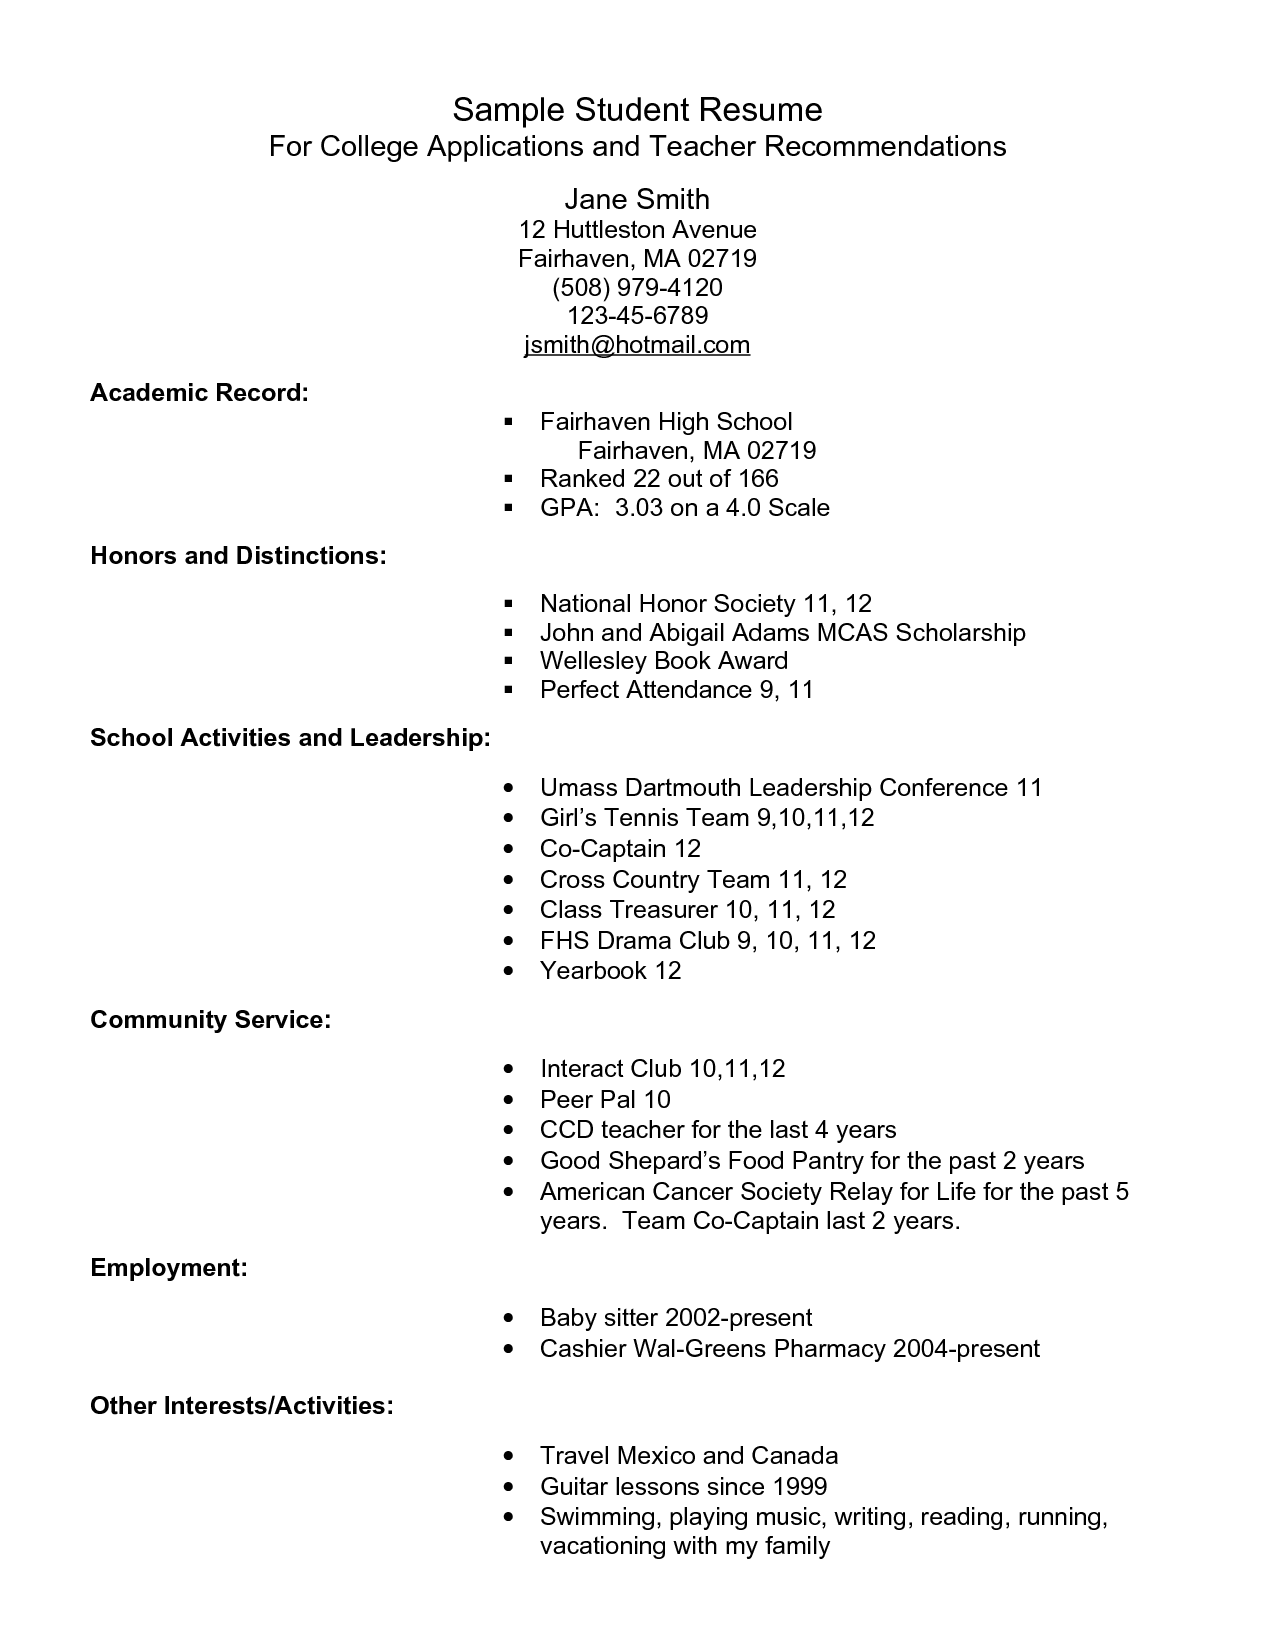 Attractive Example Resume For High School Students For College Applications Sample Student  Resume   PDF By Smapdi59 Ideas High School Student Resume For College